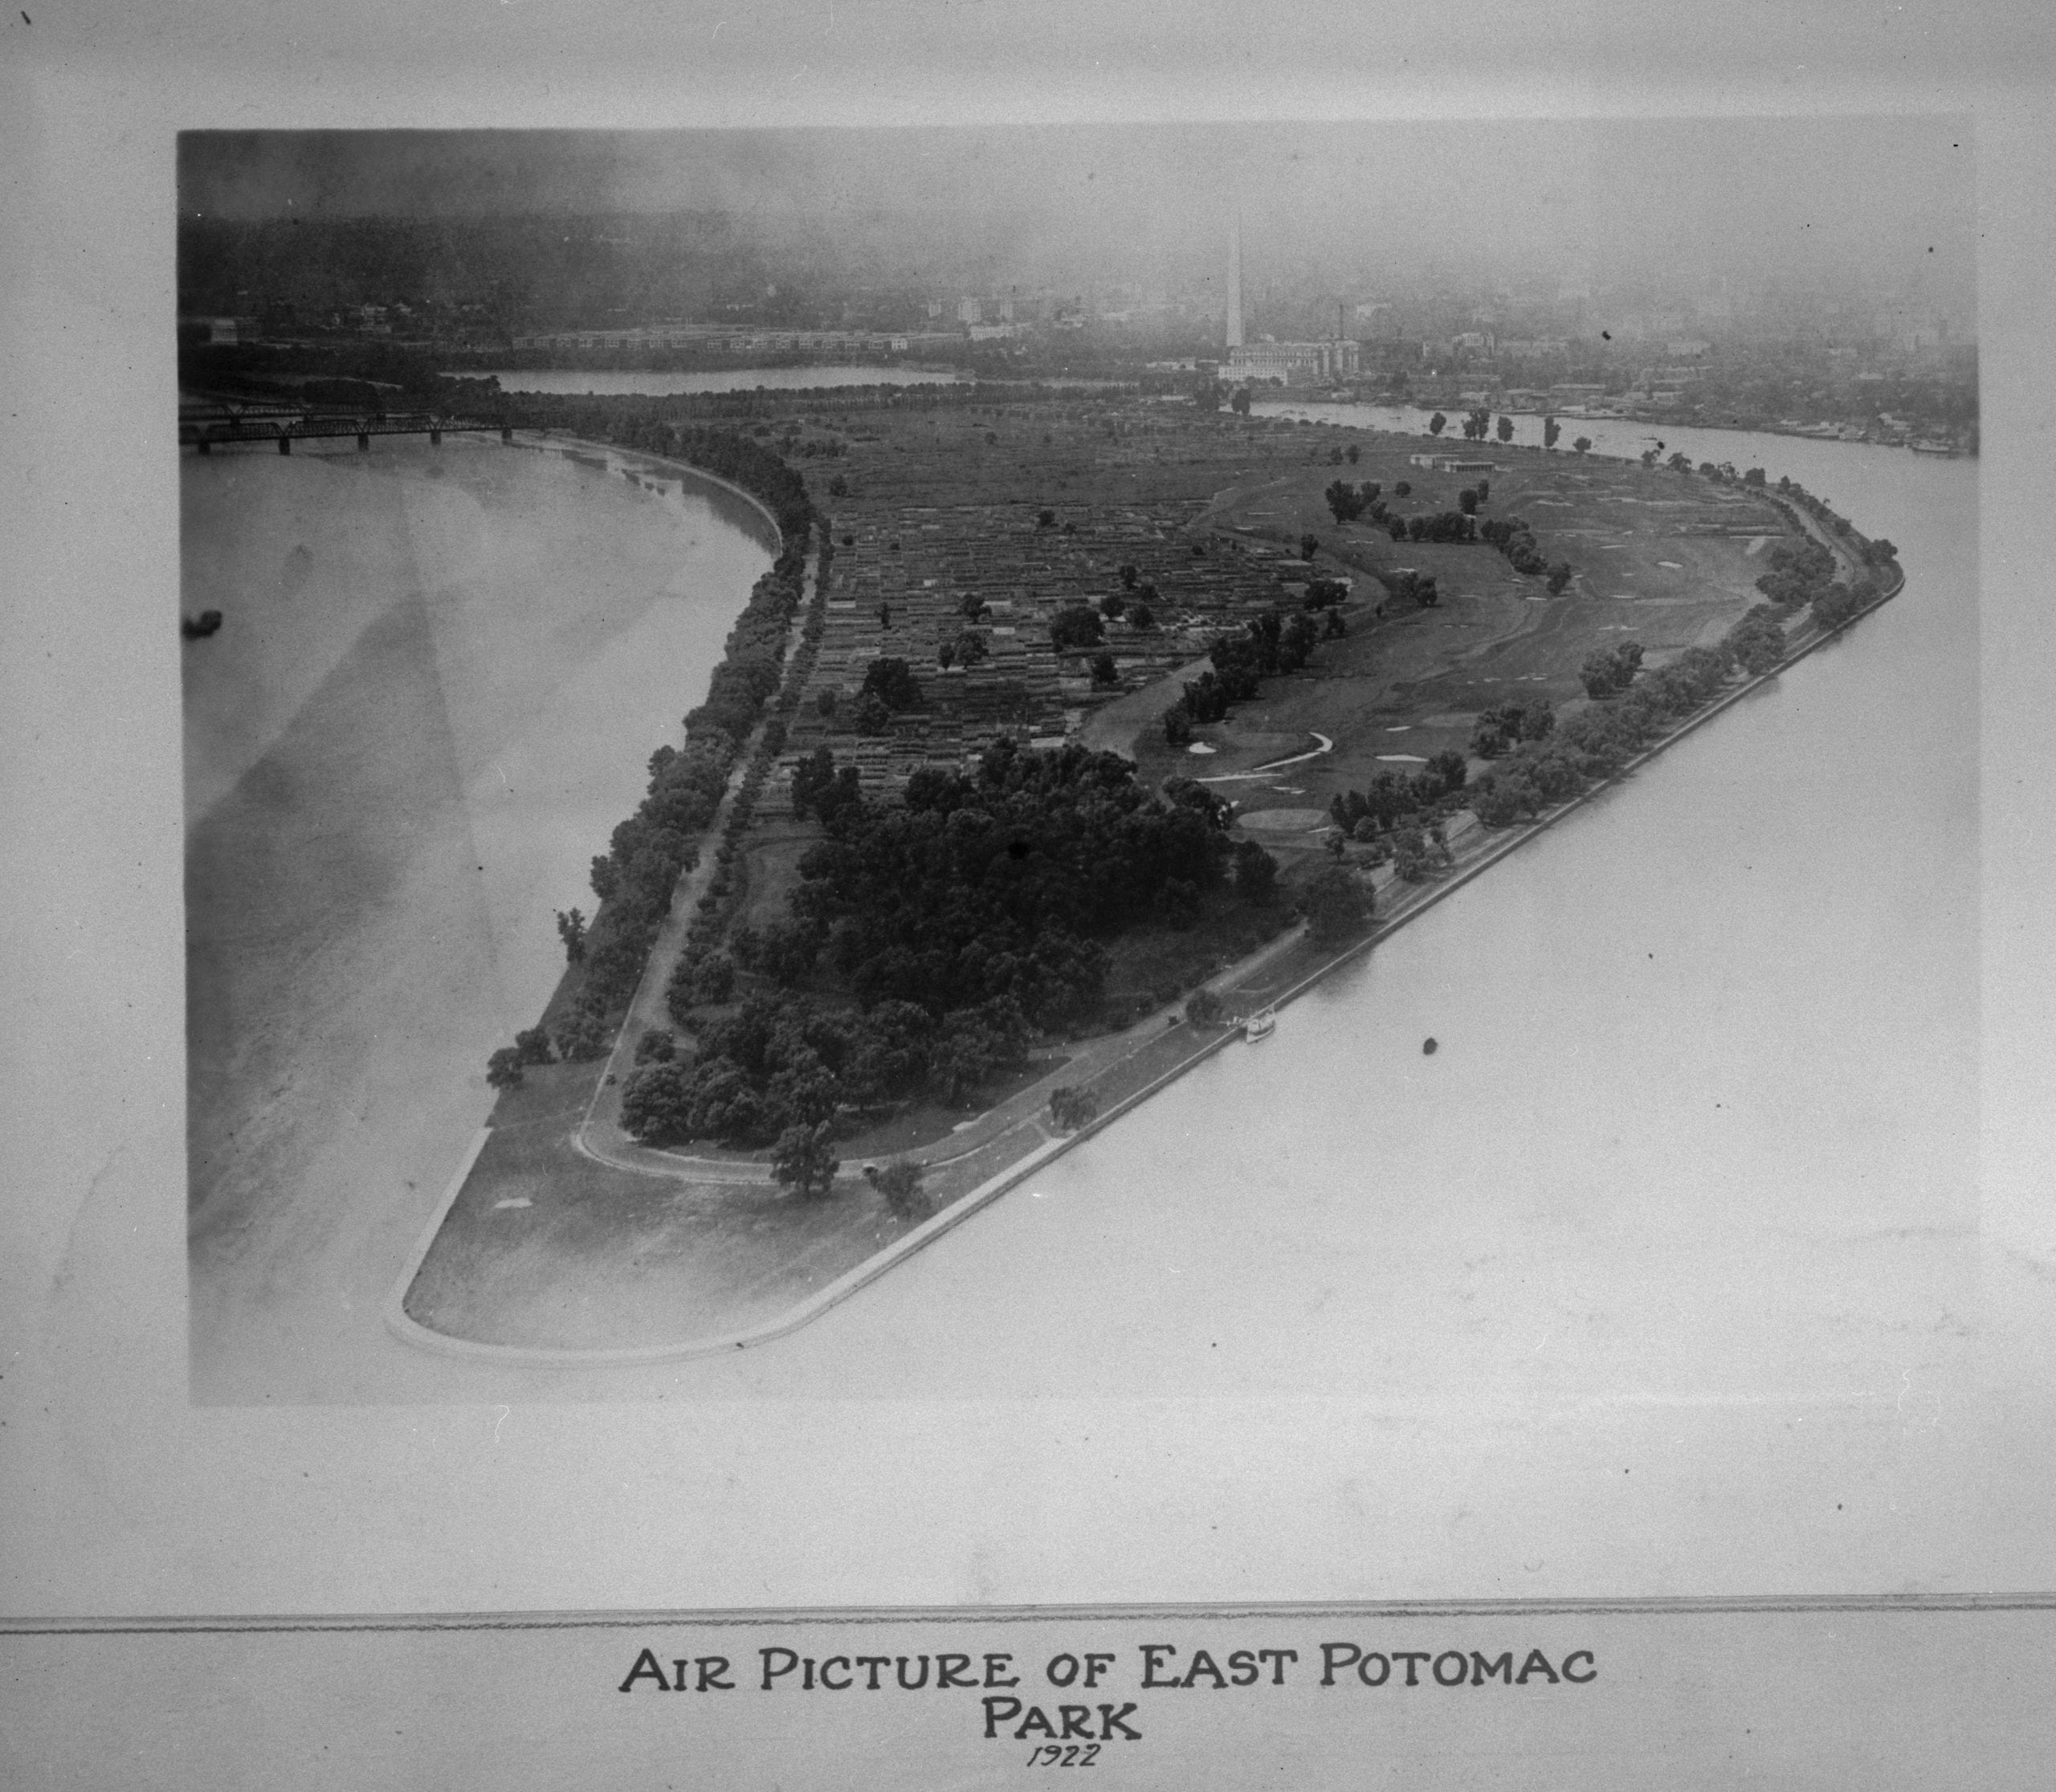 aerial view of East Potomac Park